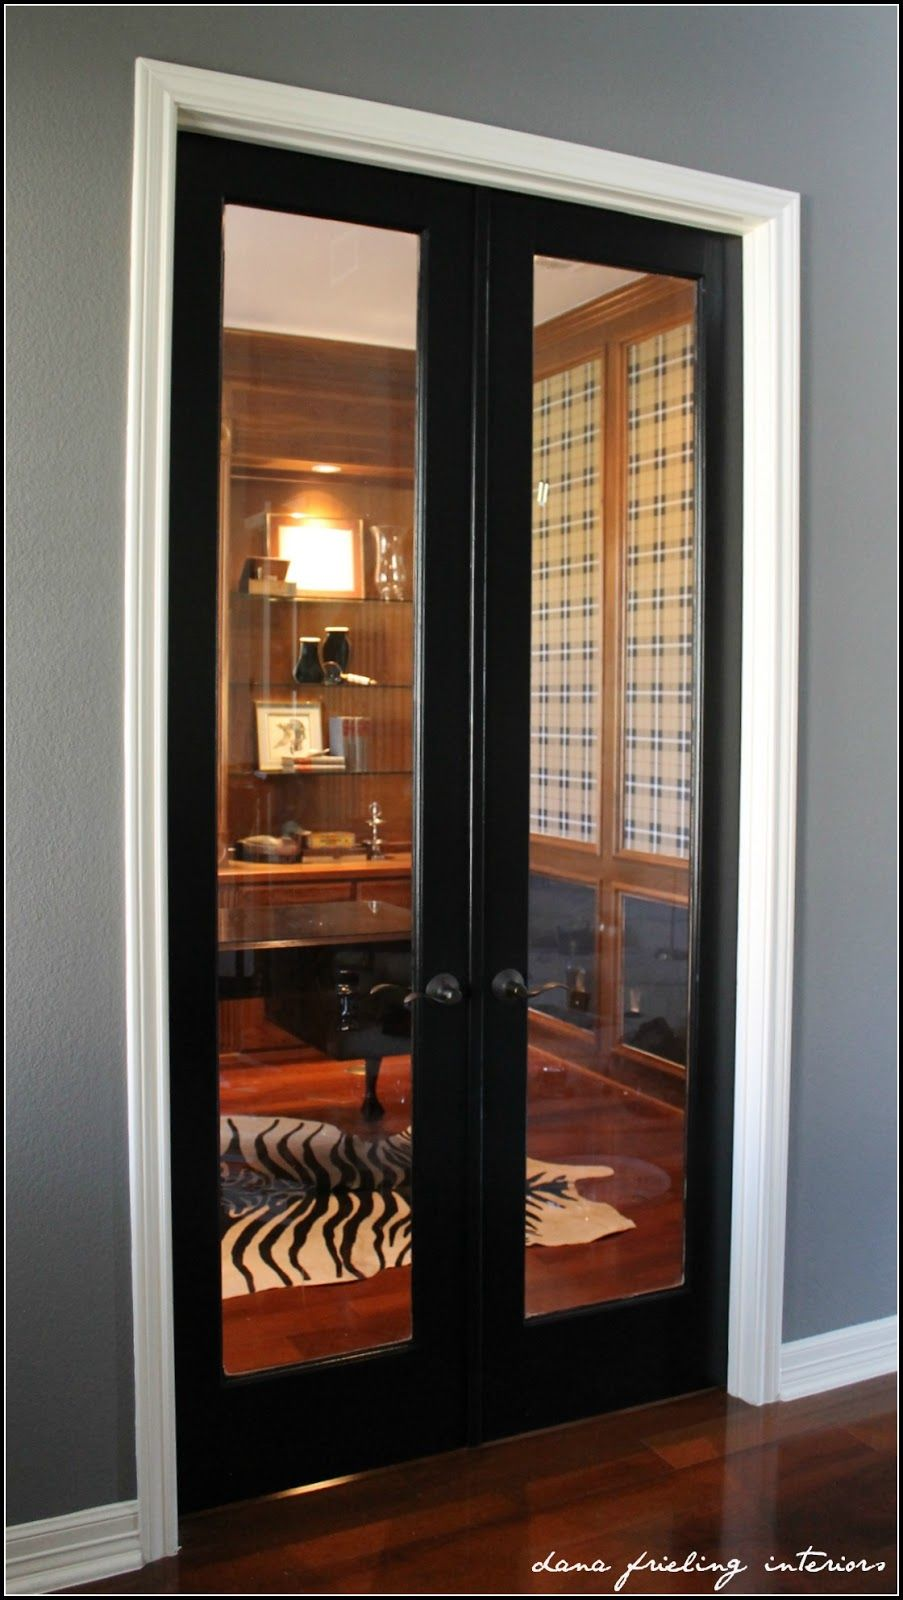 Charmant Love These Slim French Style Doors To The Office... Black Door With White  Trim, Grey Walls And Dark Floors!